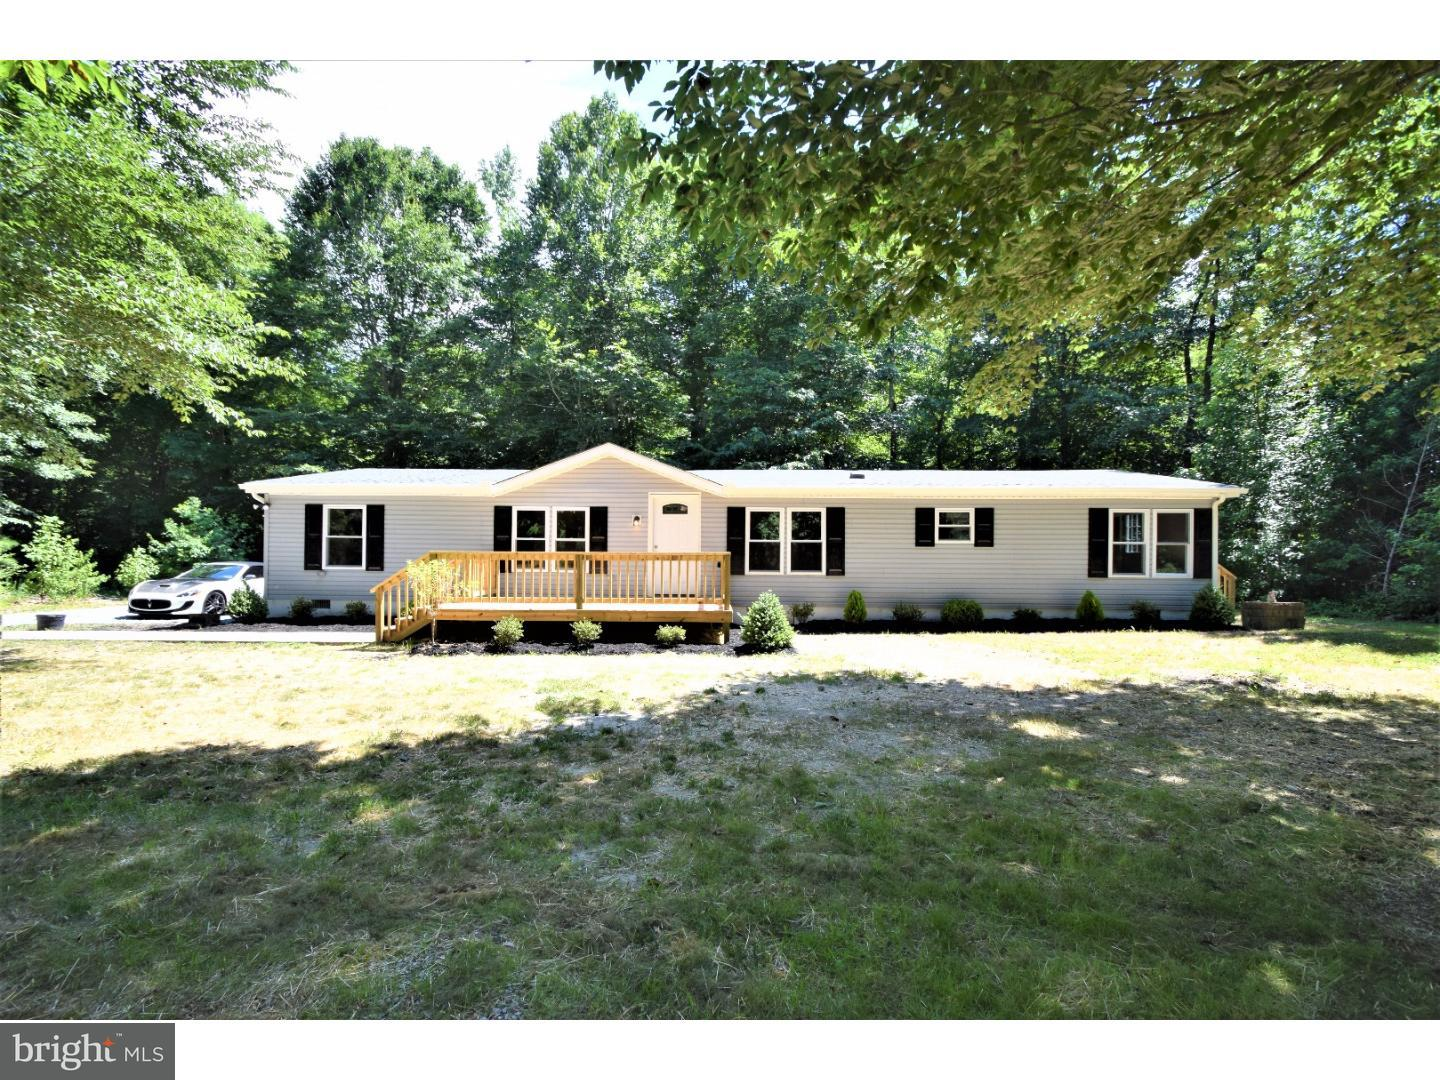 Single Family Home for Sale at 11604 UTICA Road Greenwood, Delaware 19950 United States